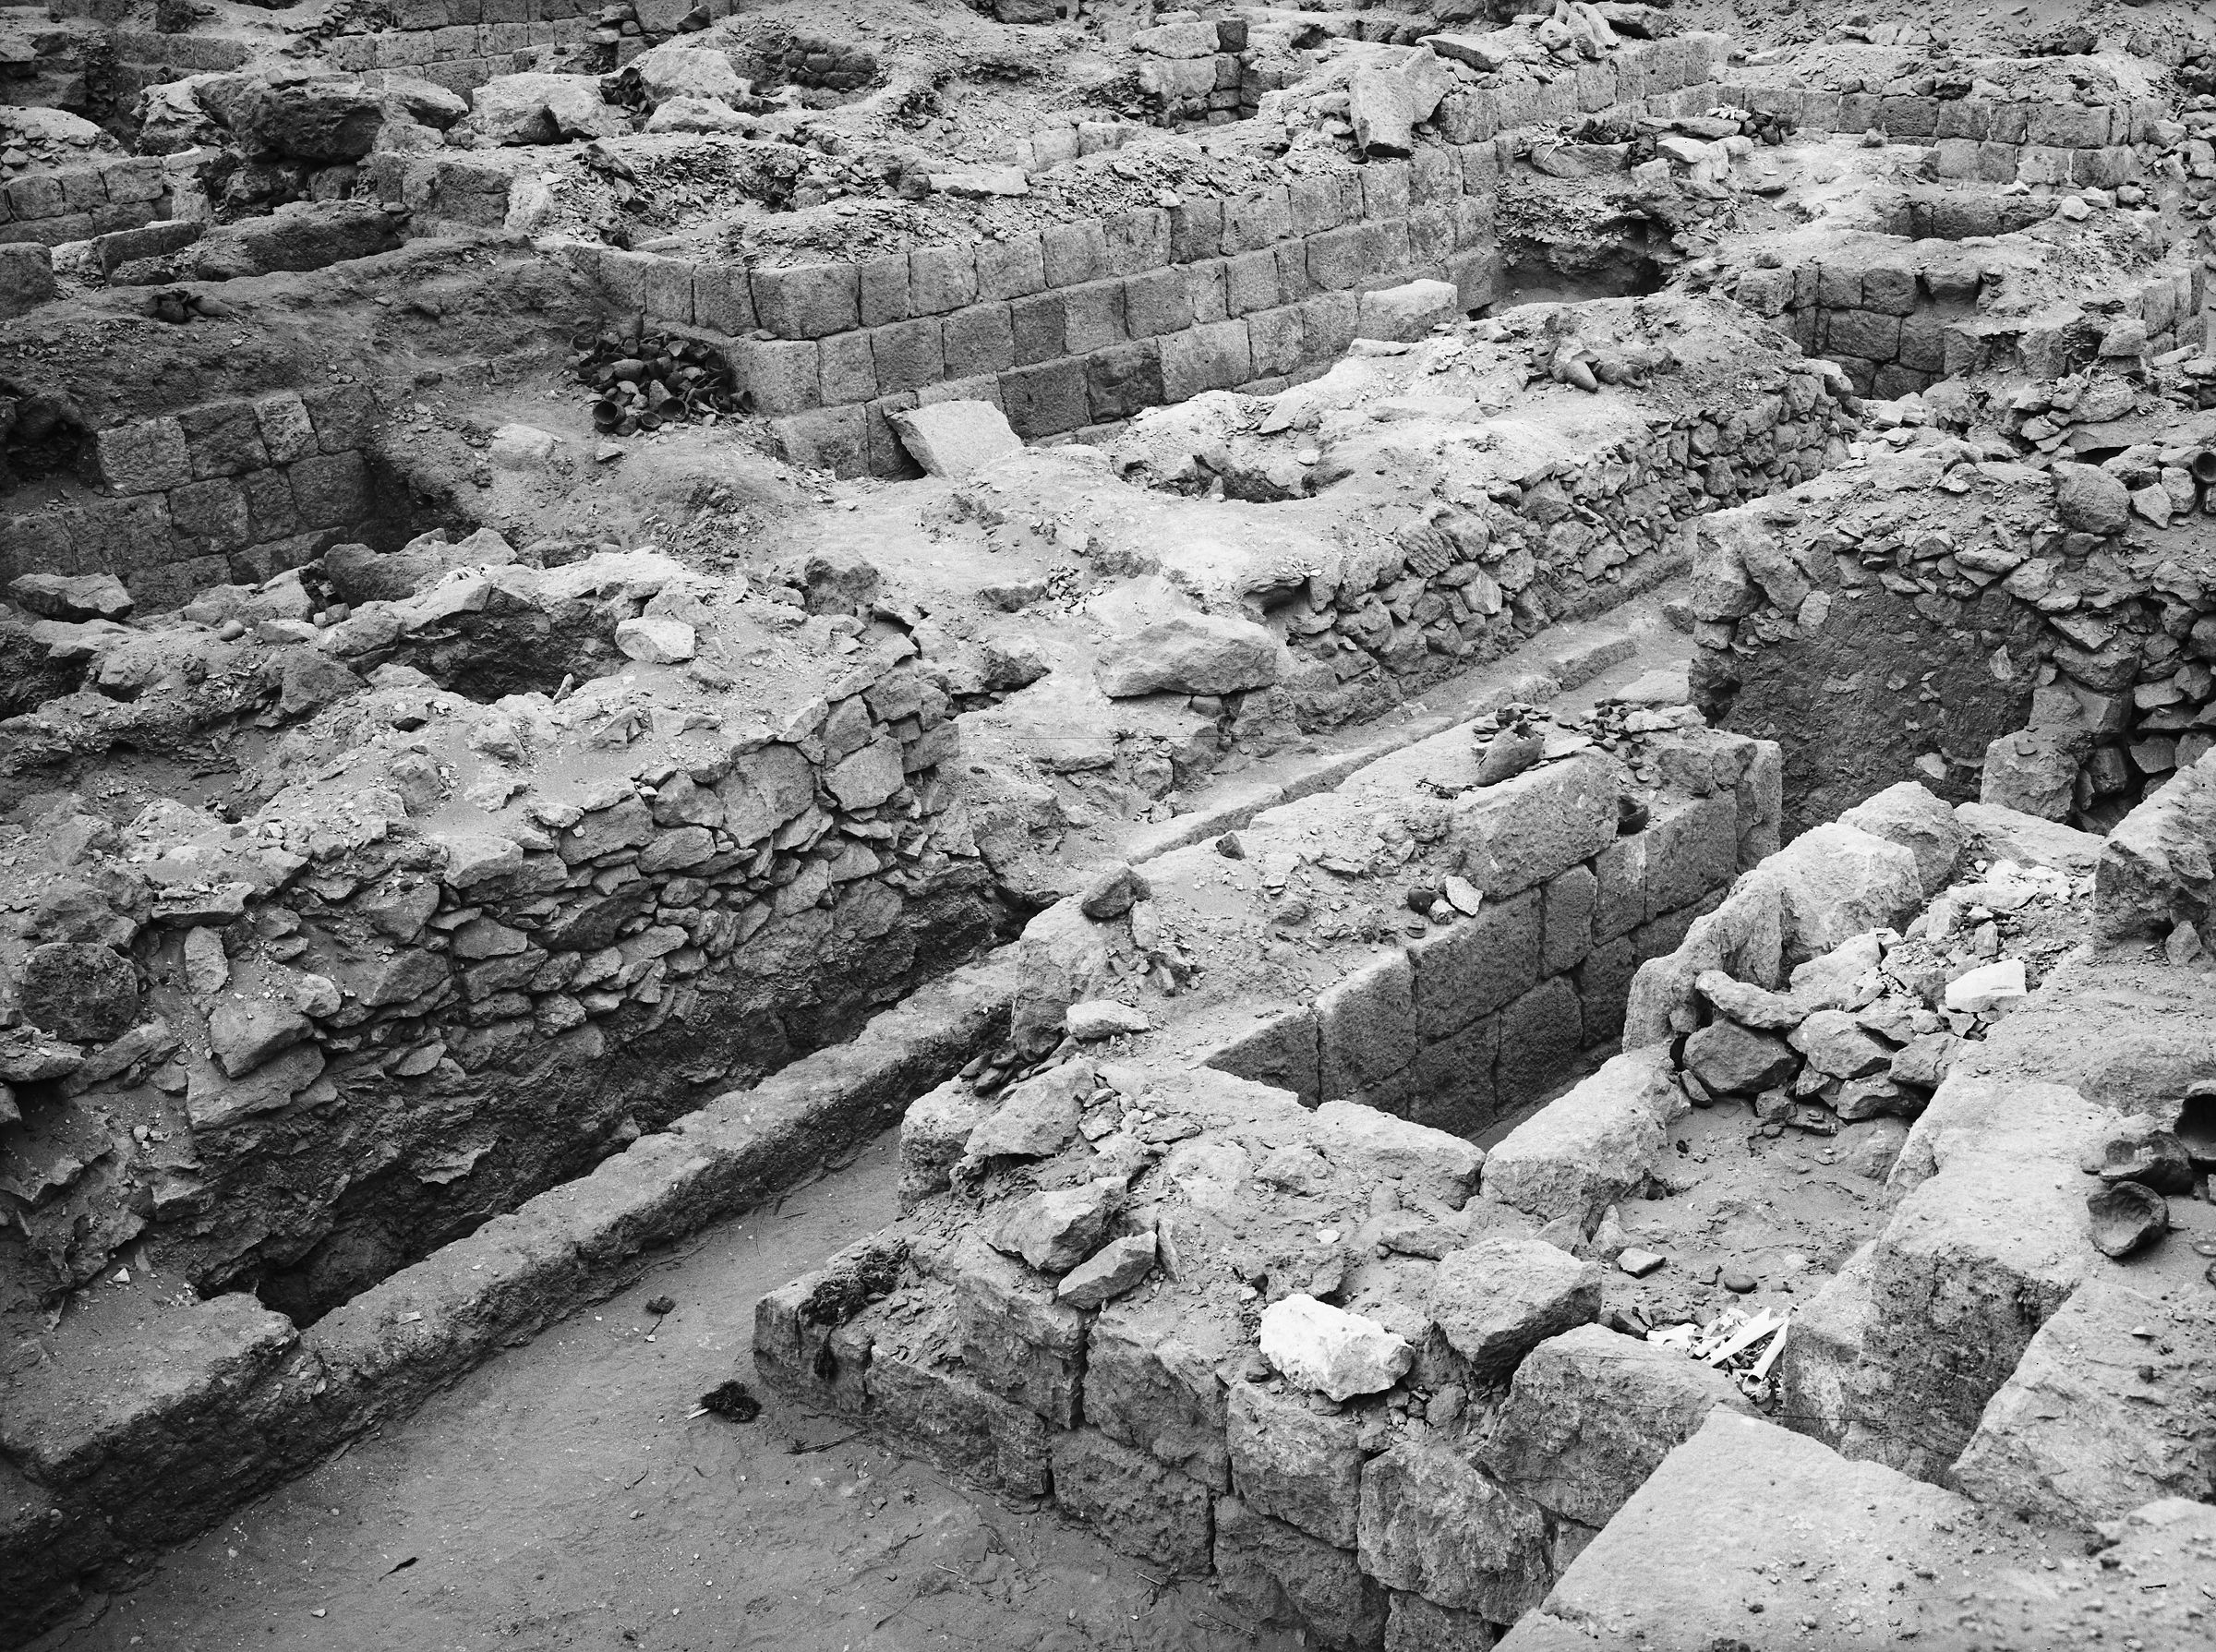 Western Cemetery: Site: Giza; View: G 1019, G 1022, G 1021